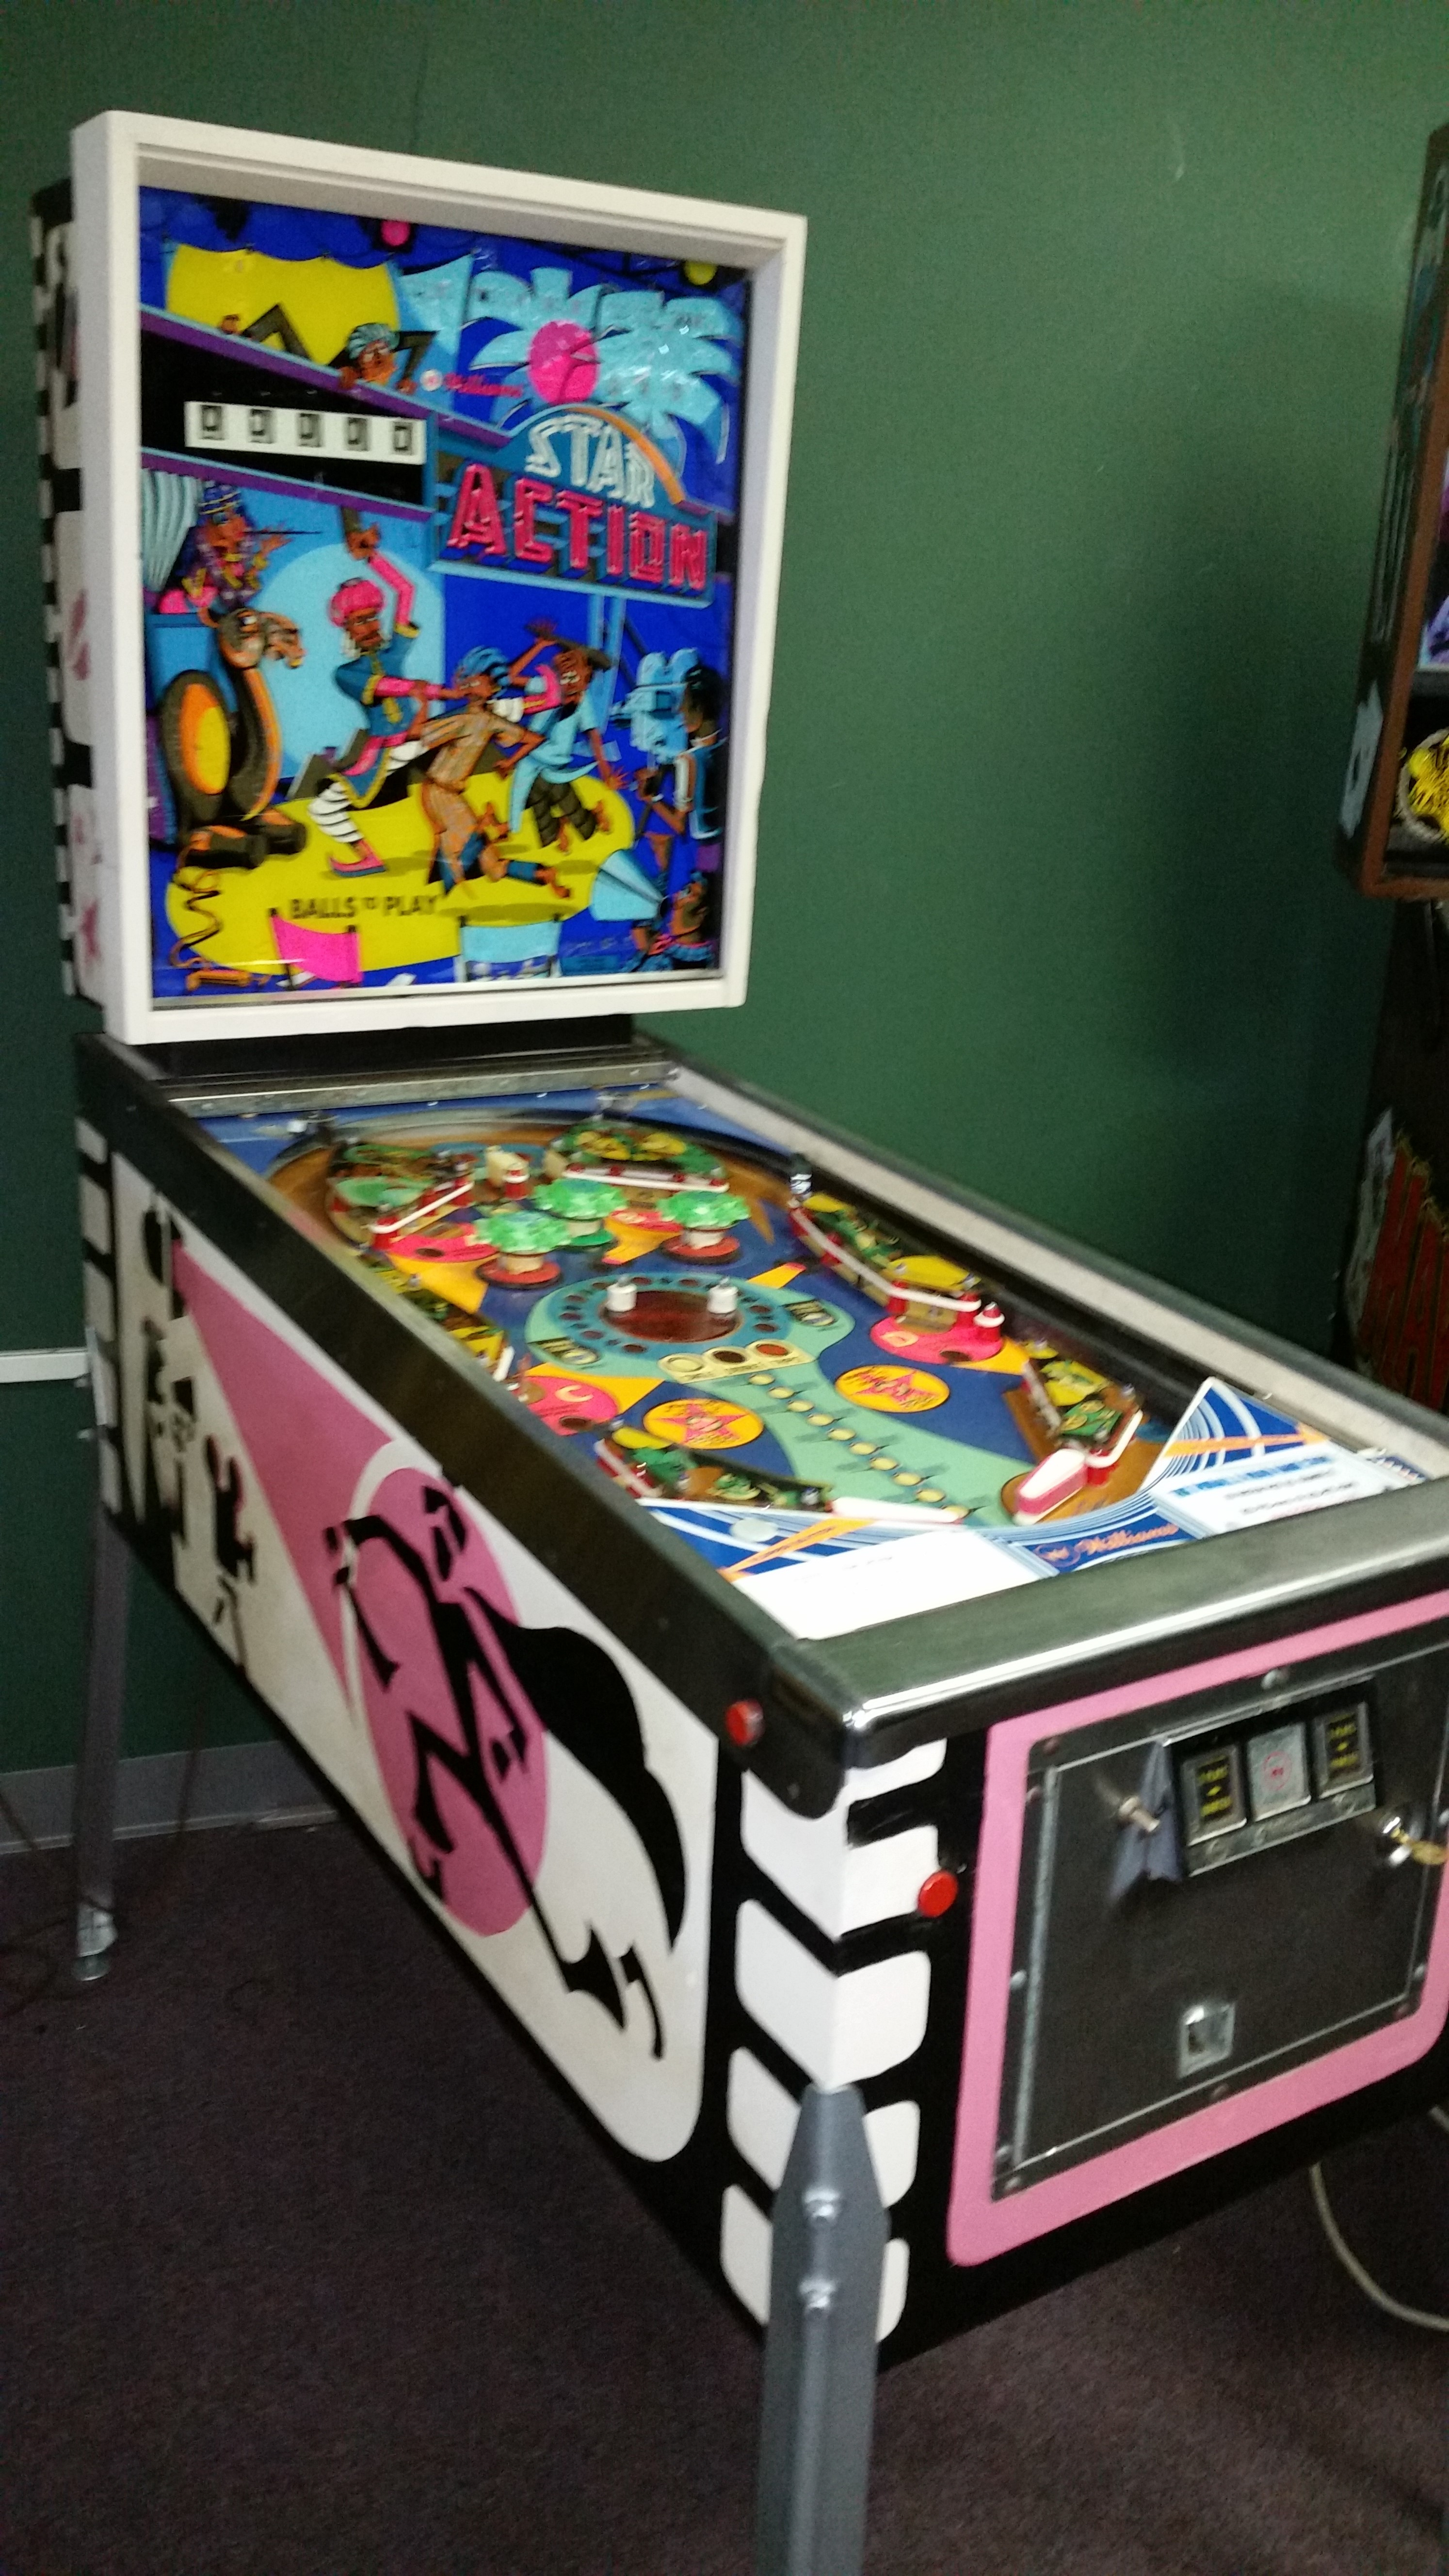 STAR ACTION Pinball Machine Game for sale by WILLIAMS FREE